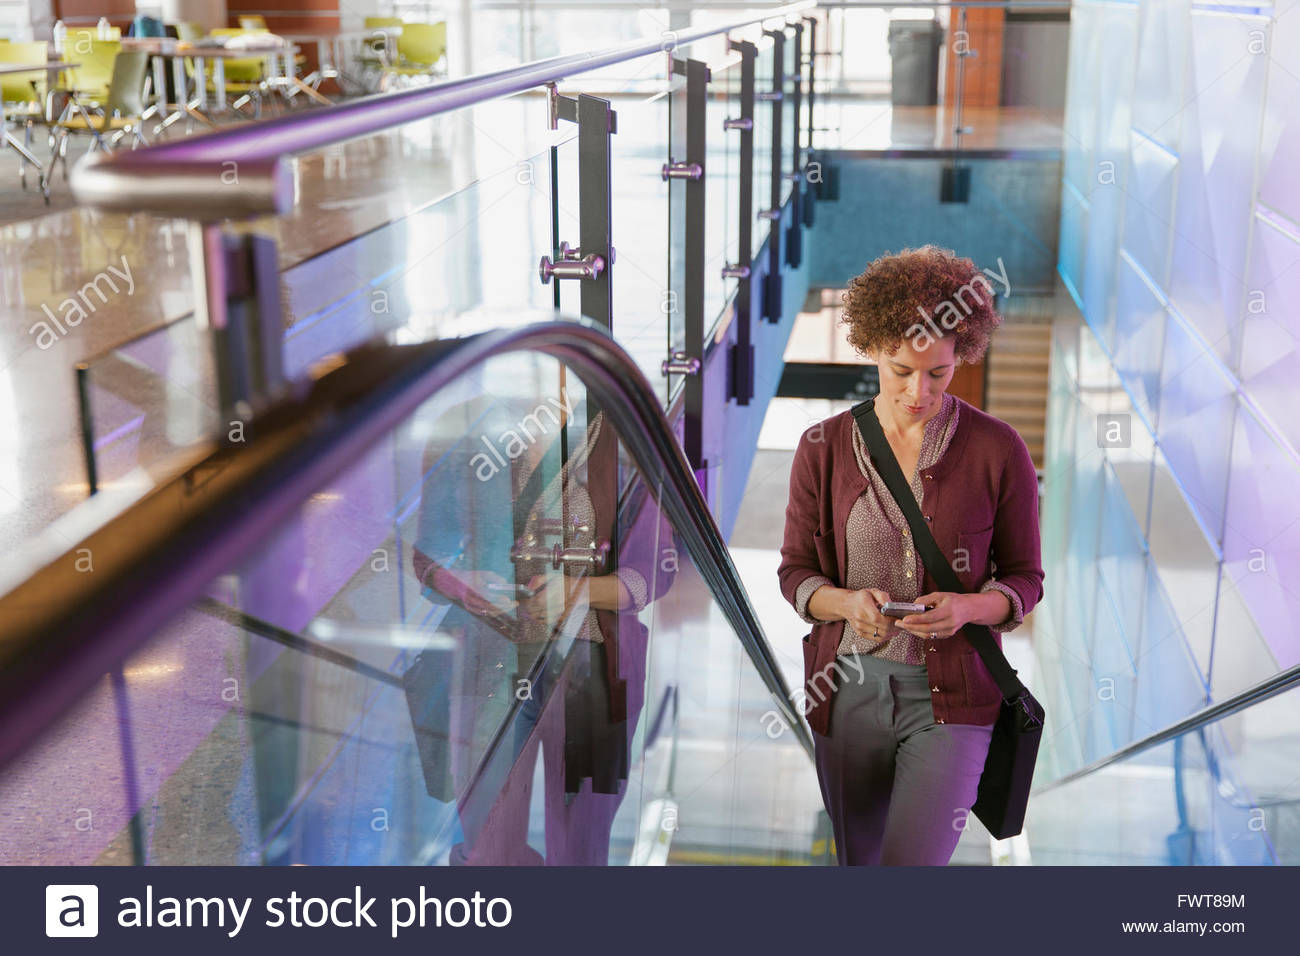 Woman texting on smartphone going up escalator. - Stock Image